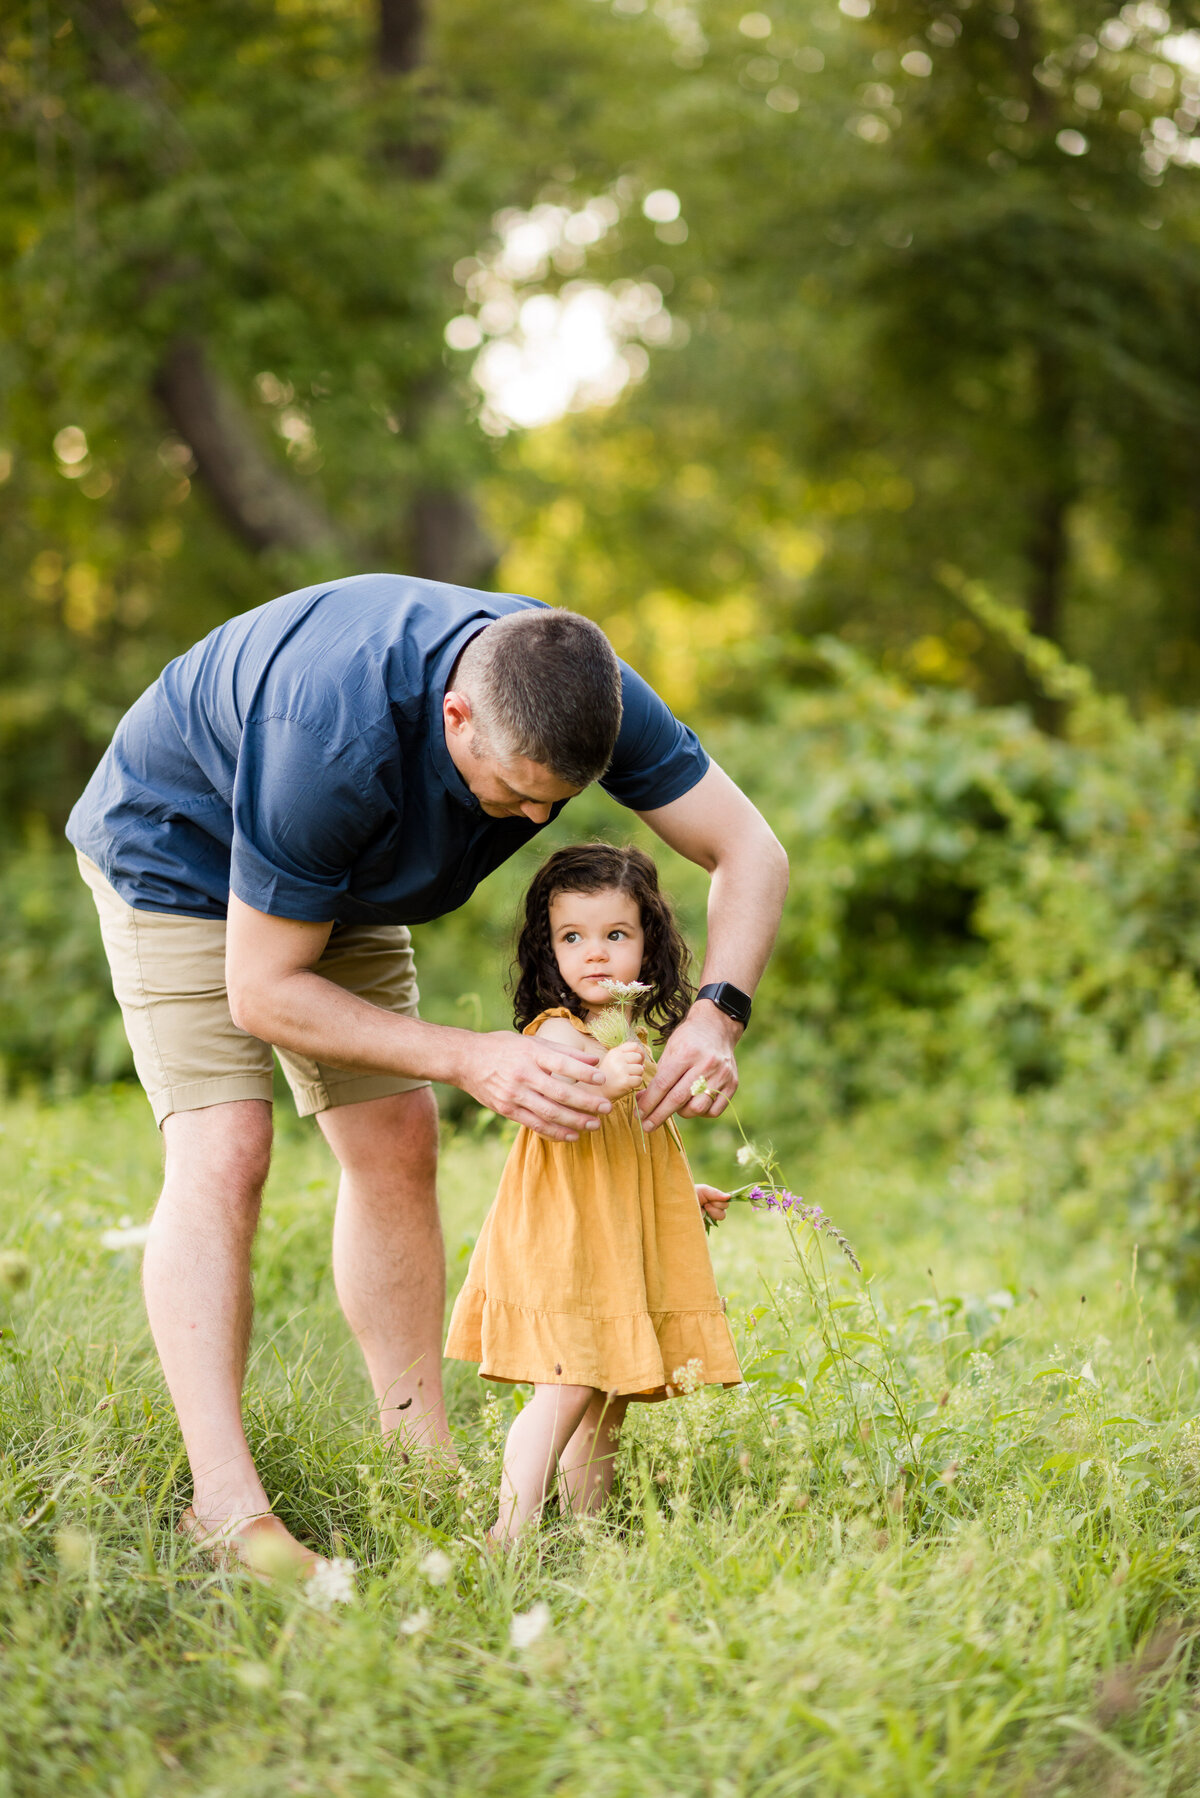 Boston-family-photographer-bella-wang-photography-Lifestyle-session-outdoor-wildflower-21